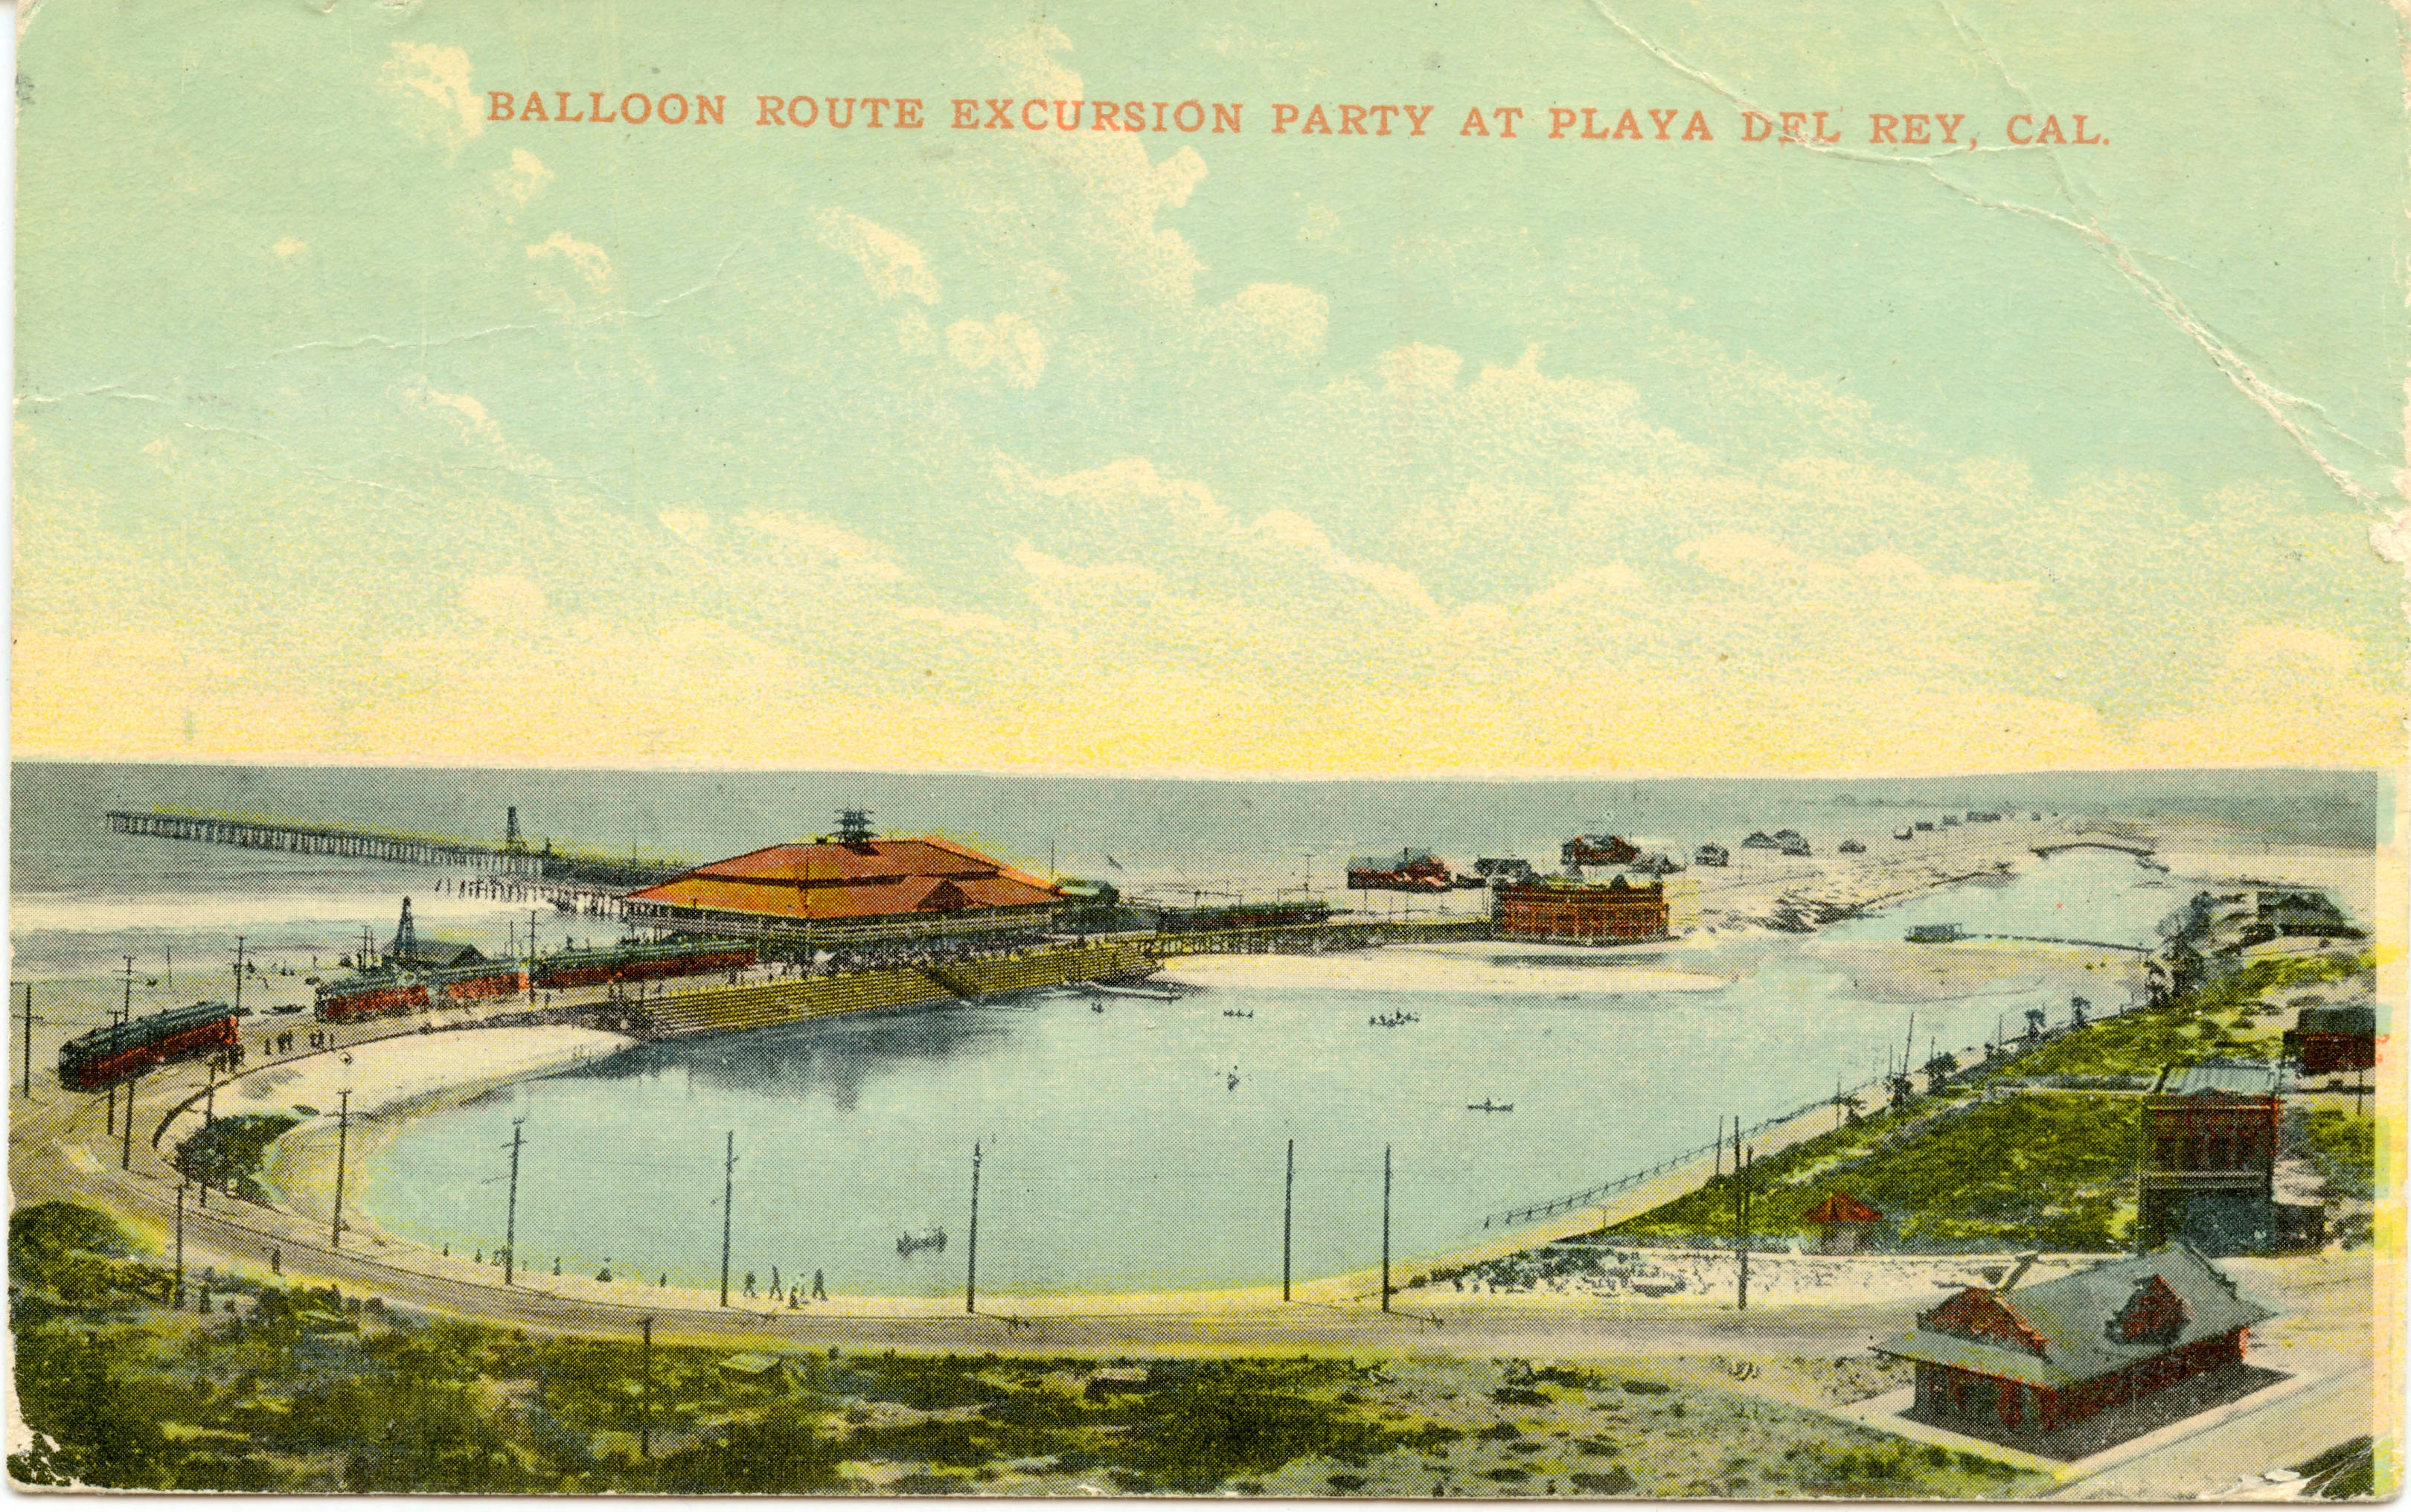 A Balloon Route excursion at the Playa del Rey Pavilion